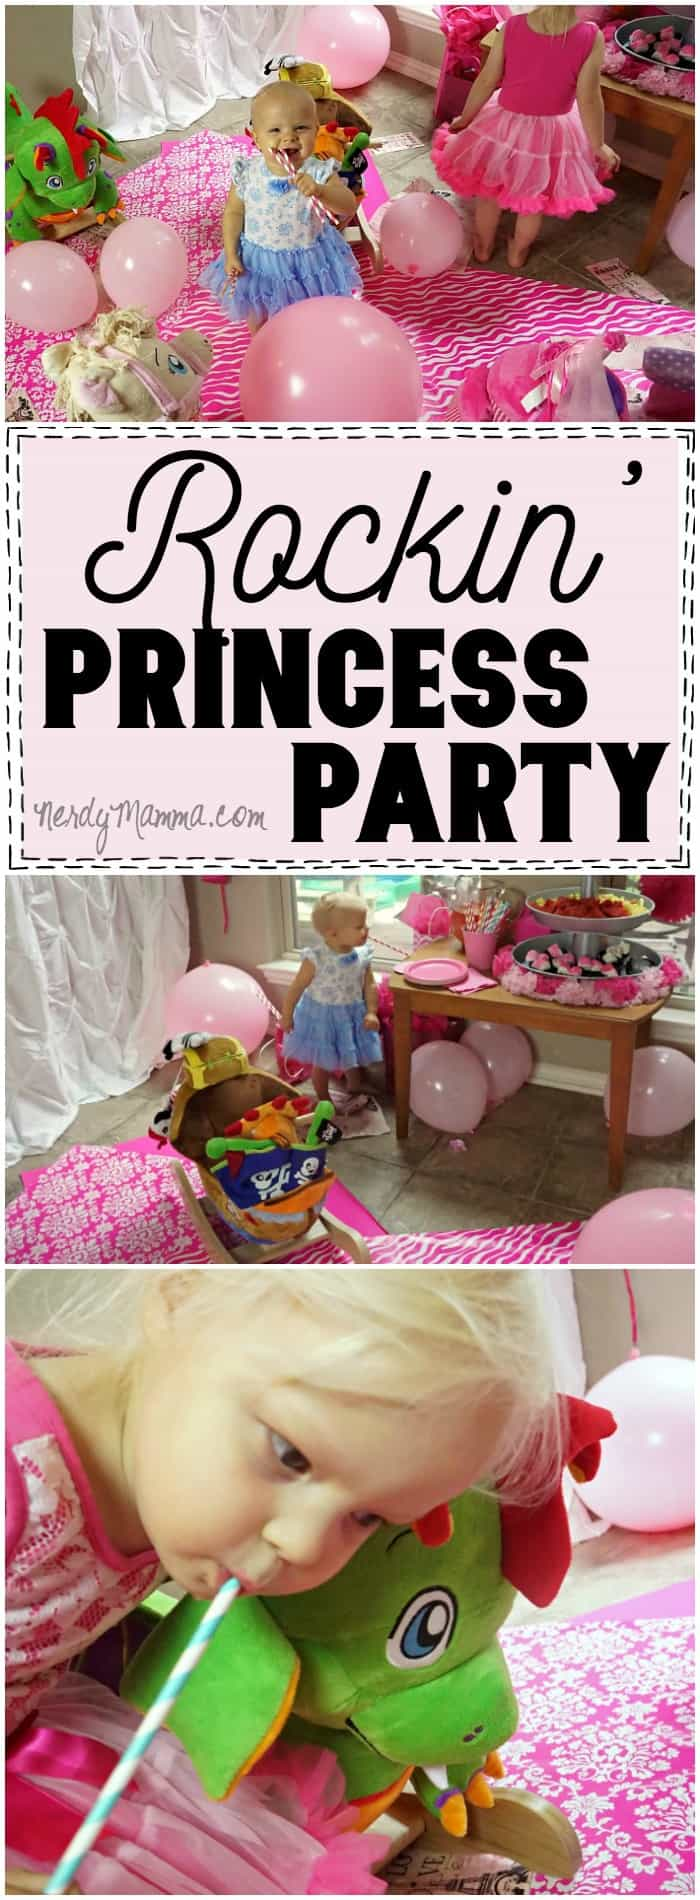 I LOVE this Rocking Princess Party idea. So simple--and SO MUCH FUN! I can't wait to do this for my daughter's next playdate.